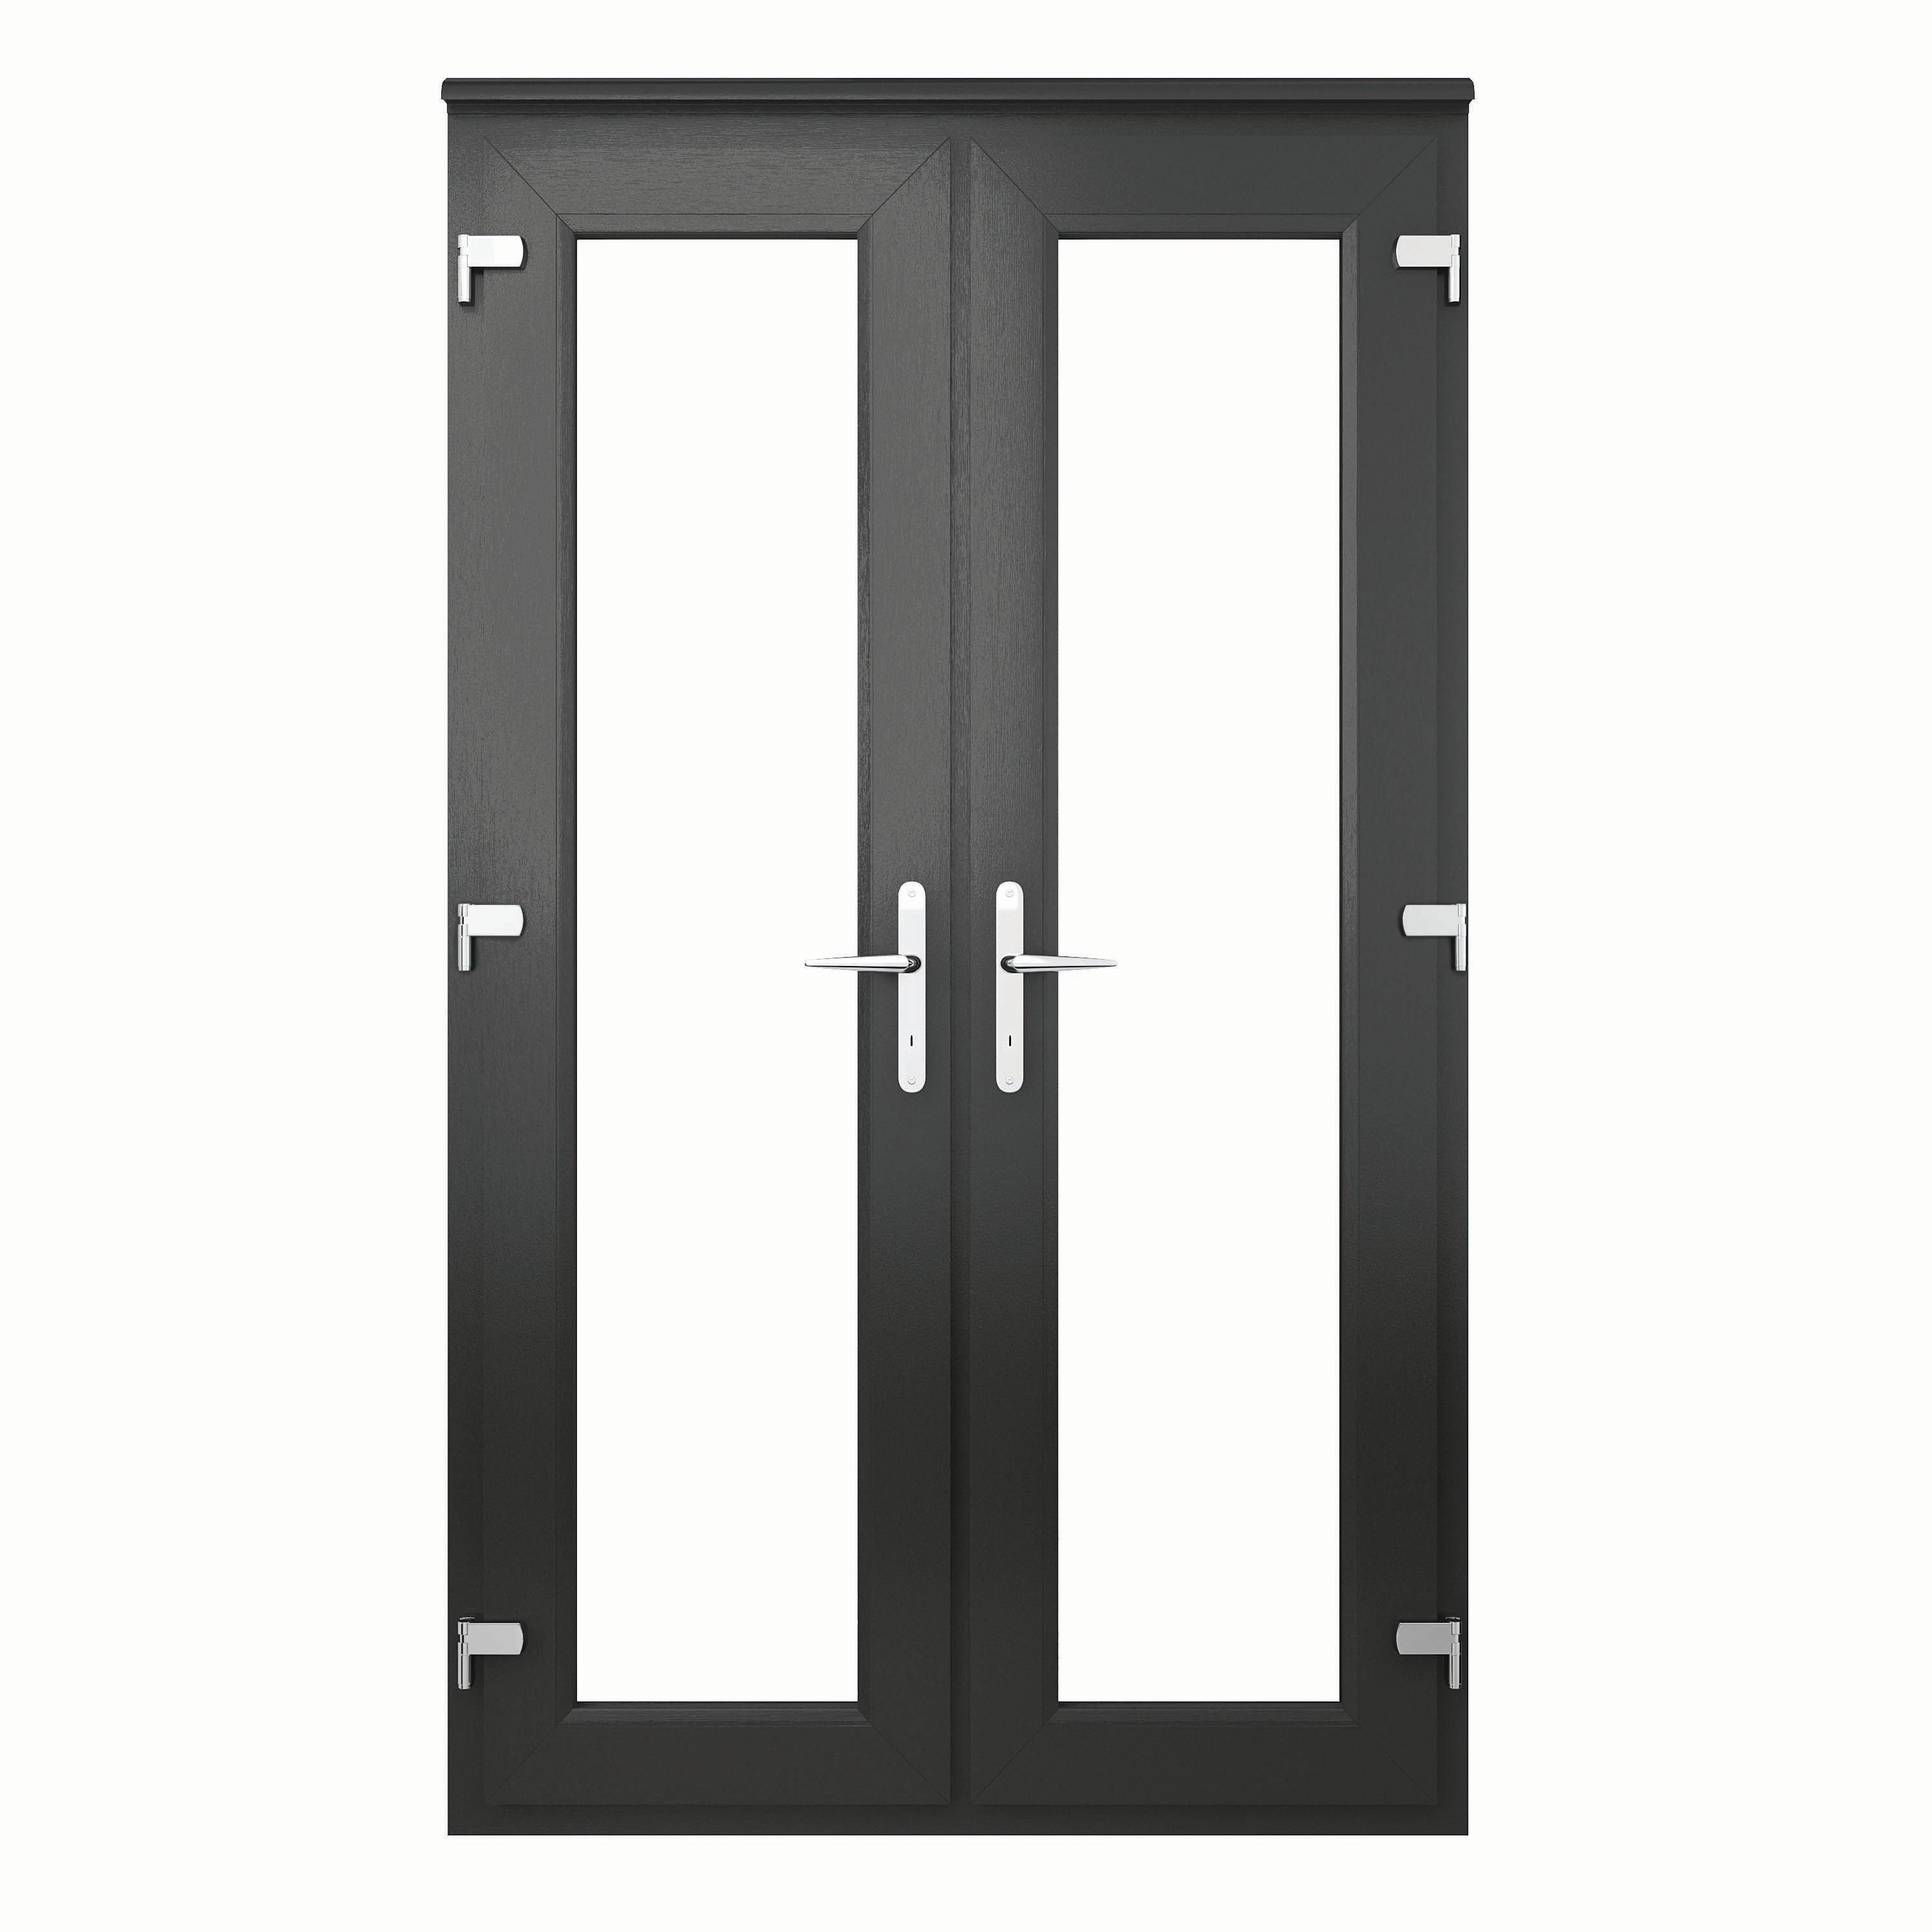 Euramax U Pvc French Door Outwards Opening by Wickes